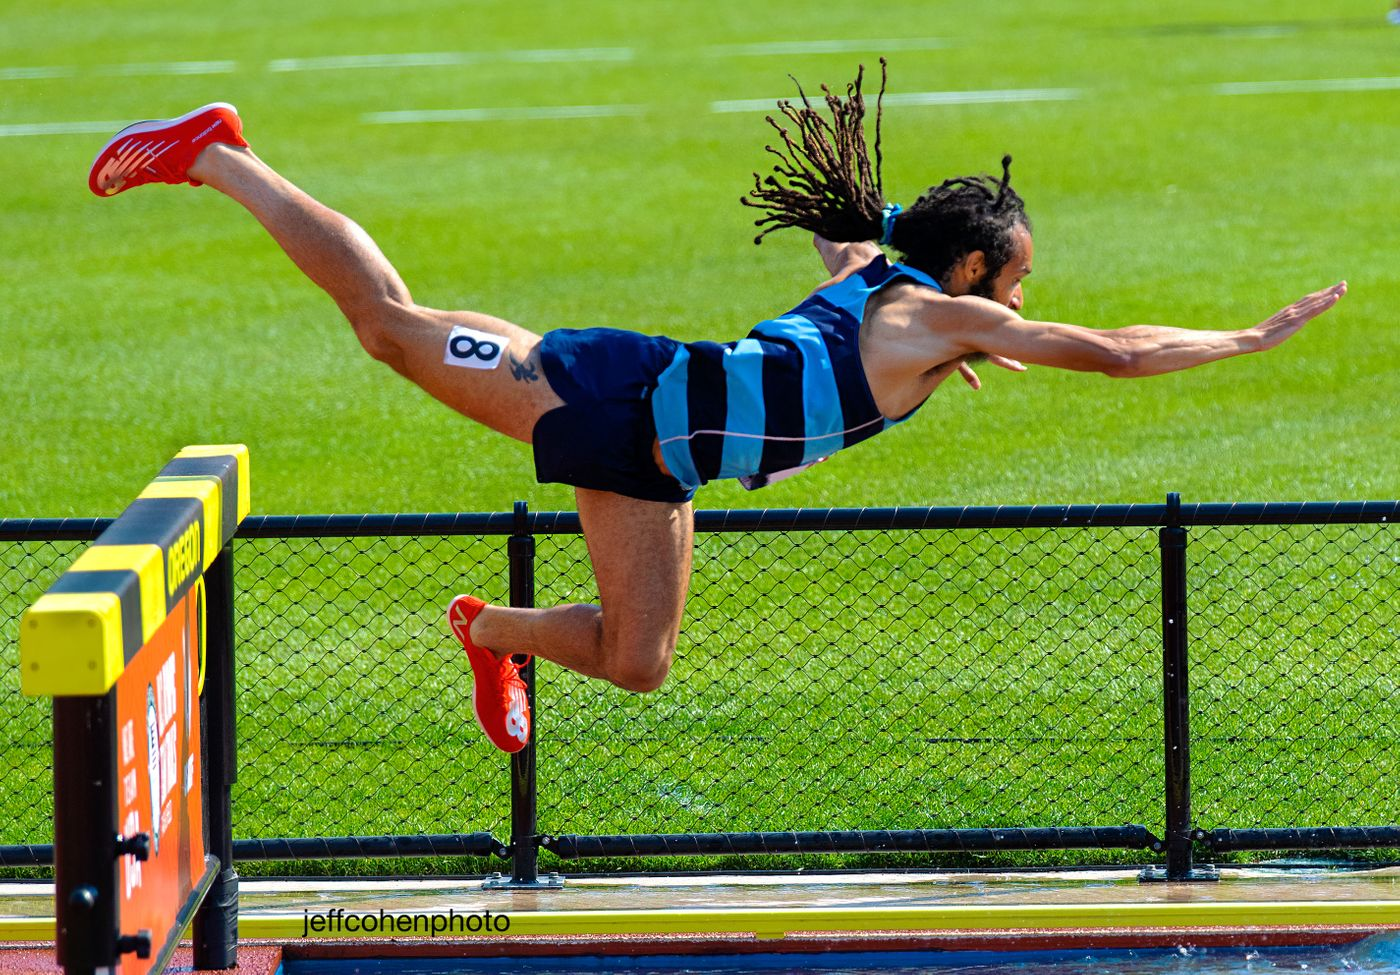 steeplem-fall-2021-US-Oly-Trials-day-4-998-jeff-cohen-photo--web.jpg